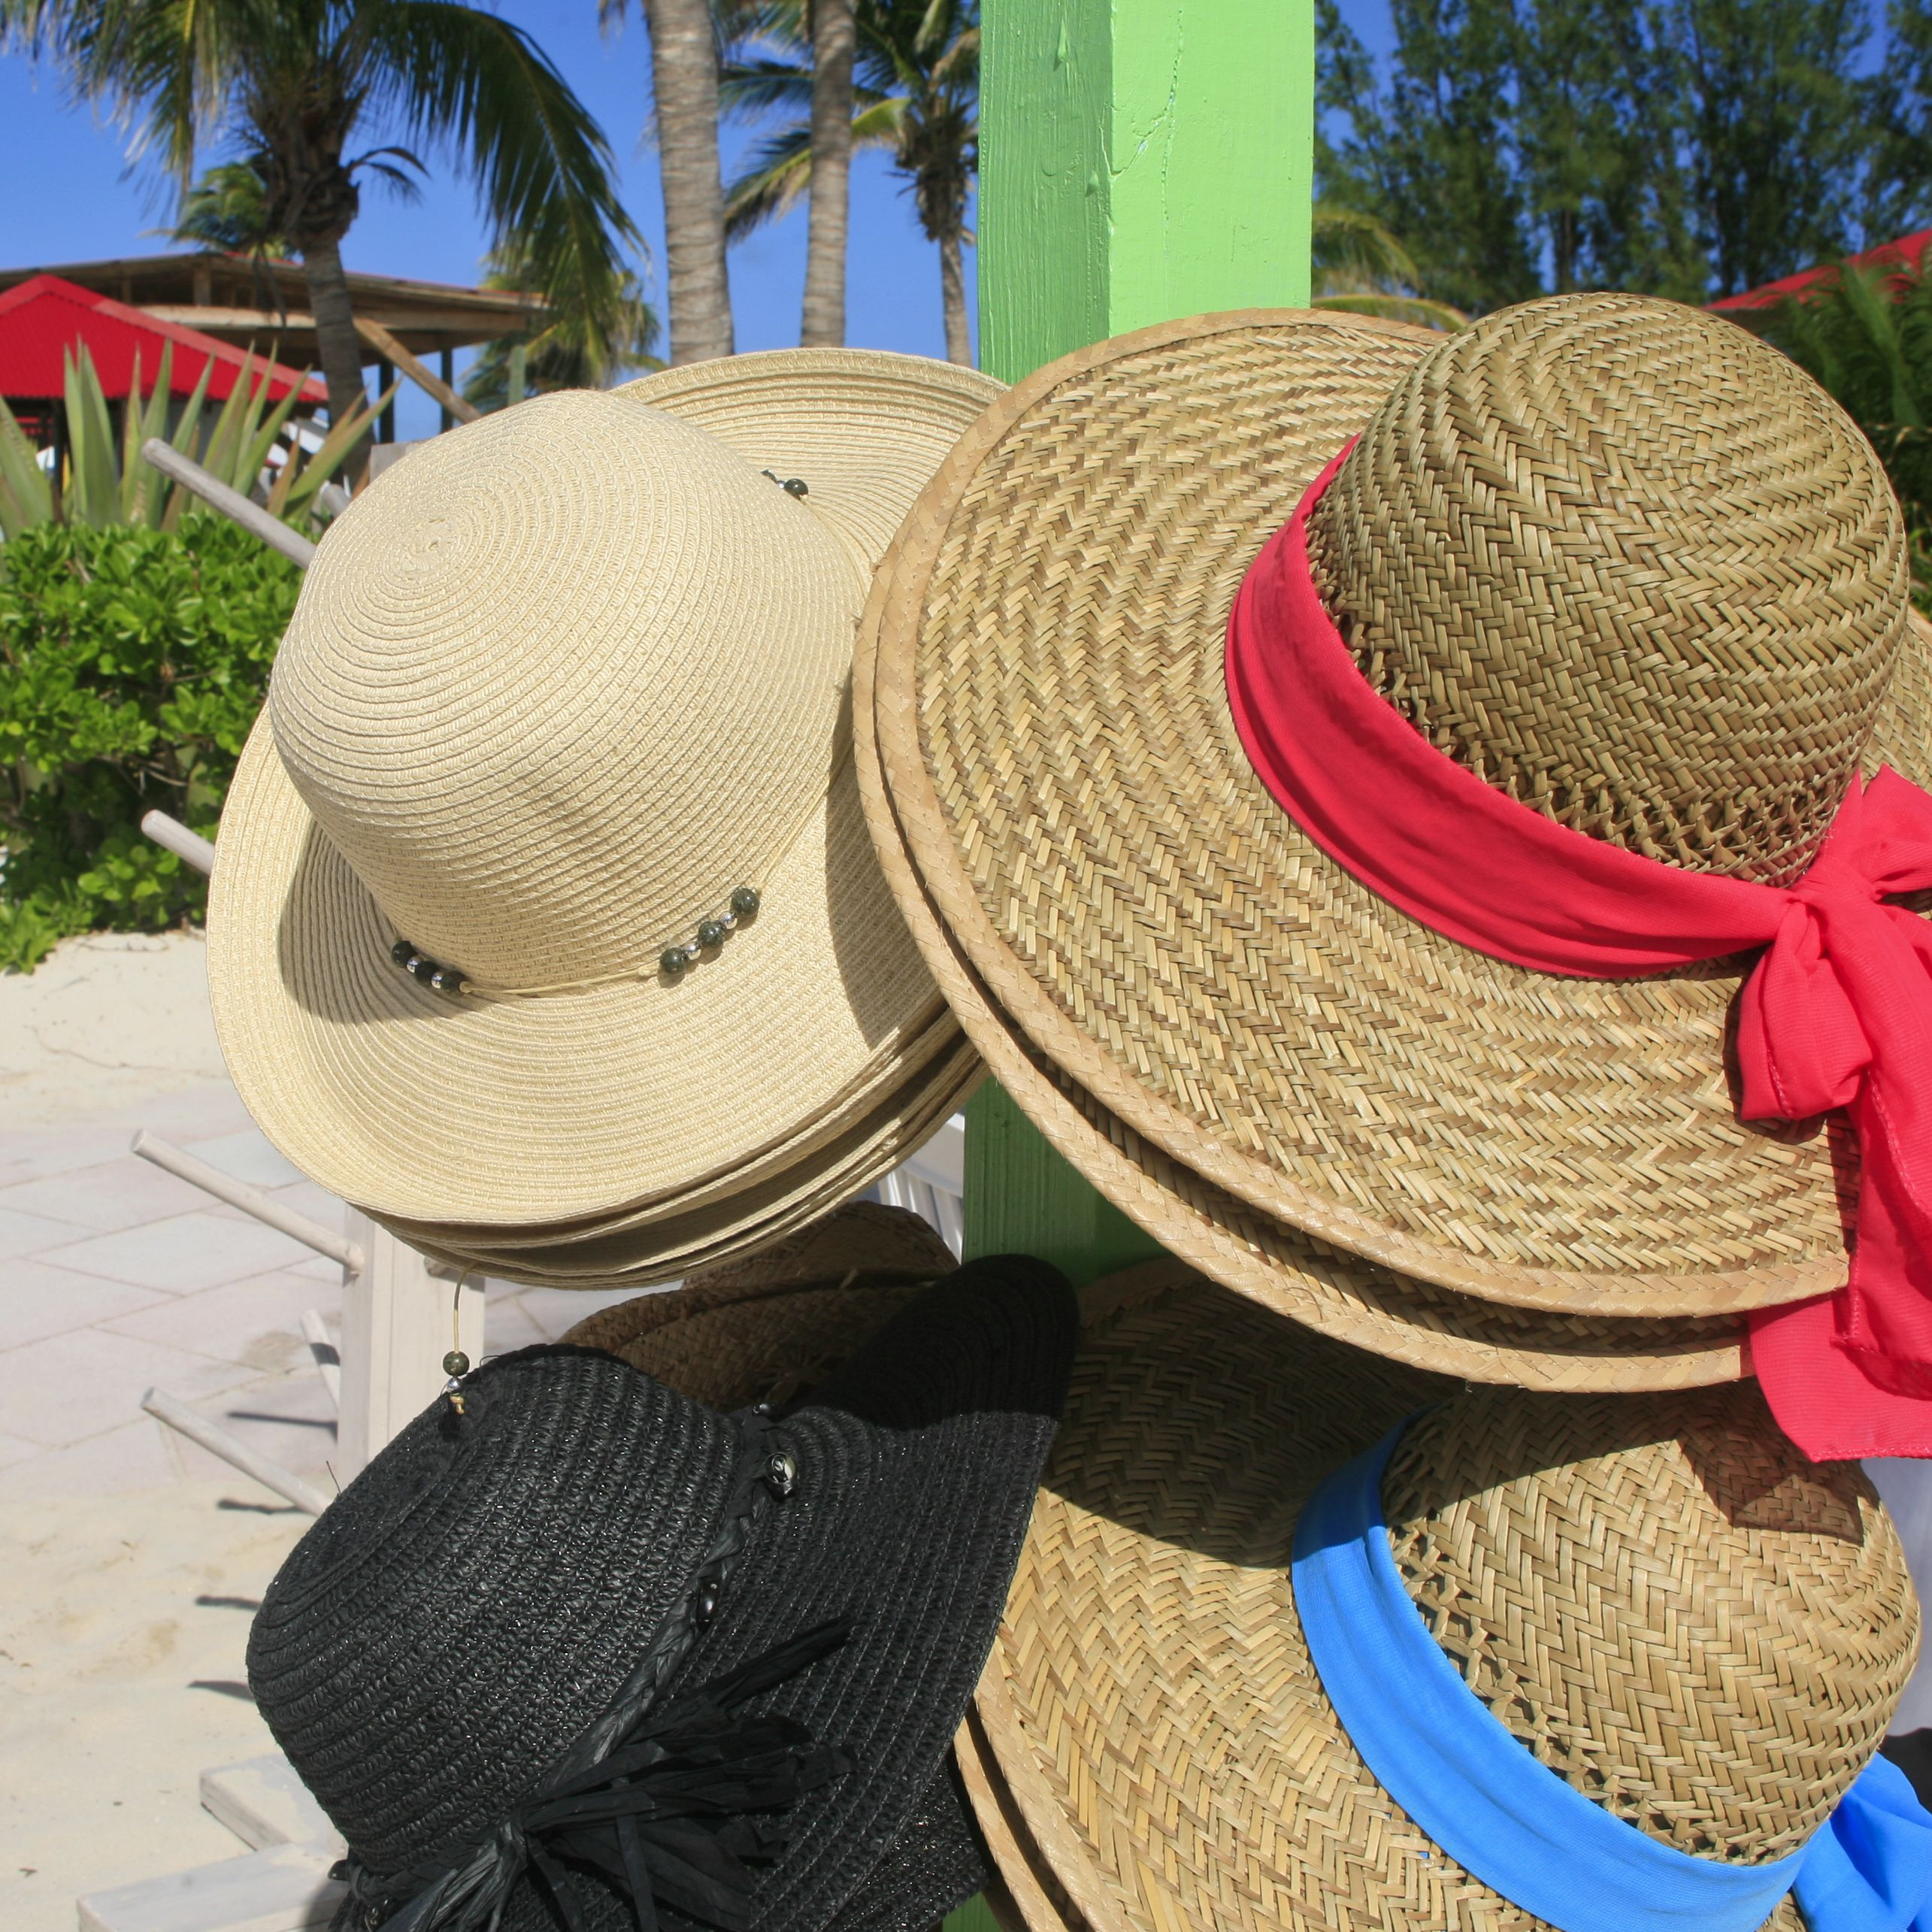 The Best Shopping in The Bahamas